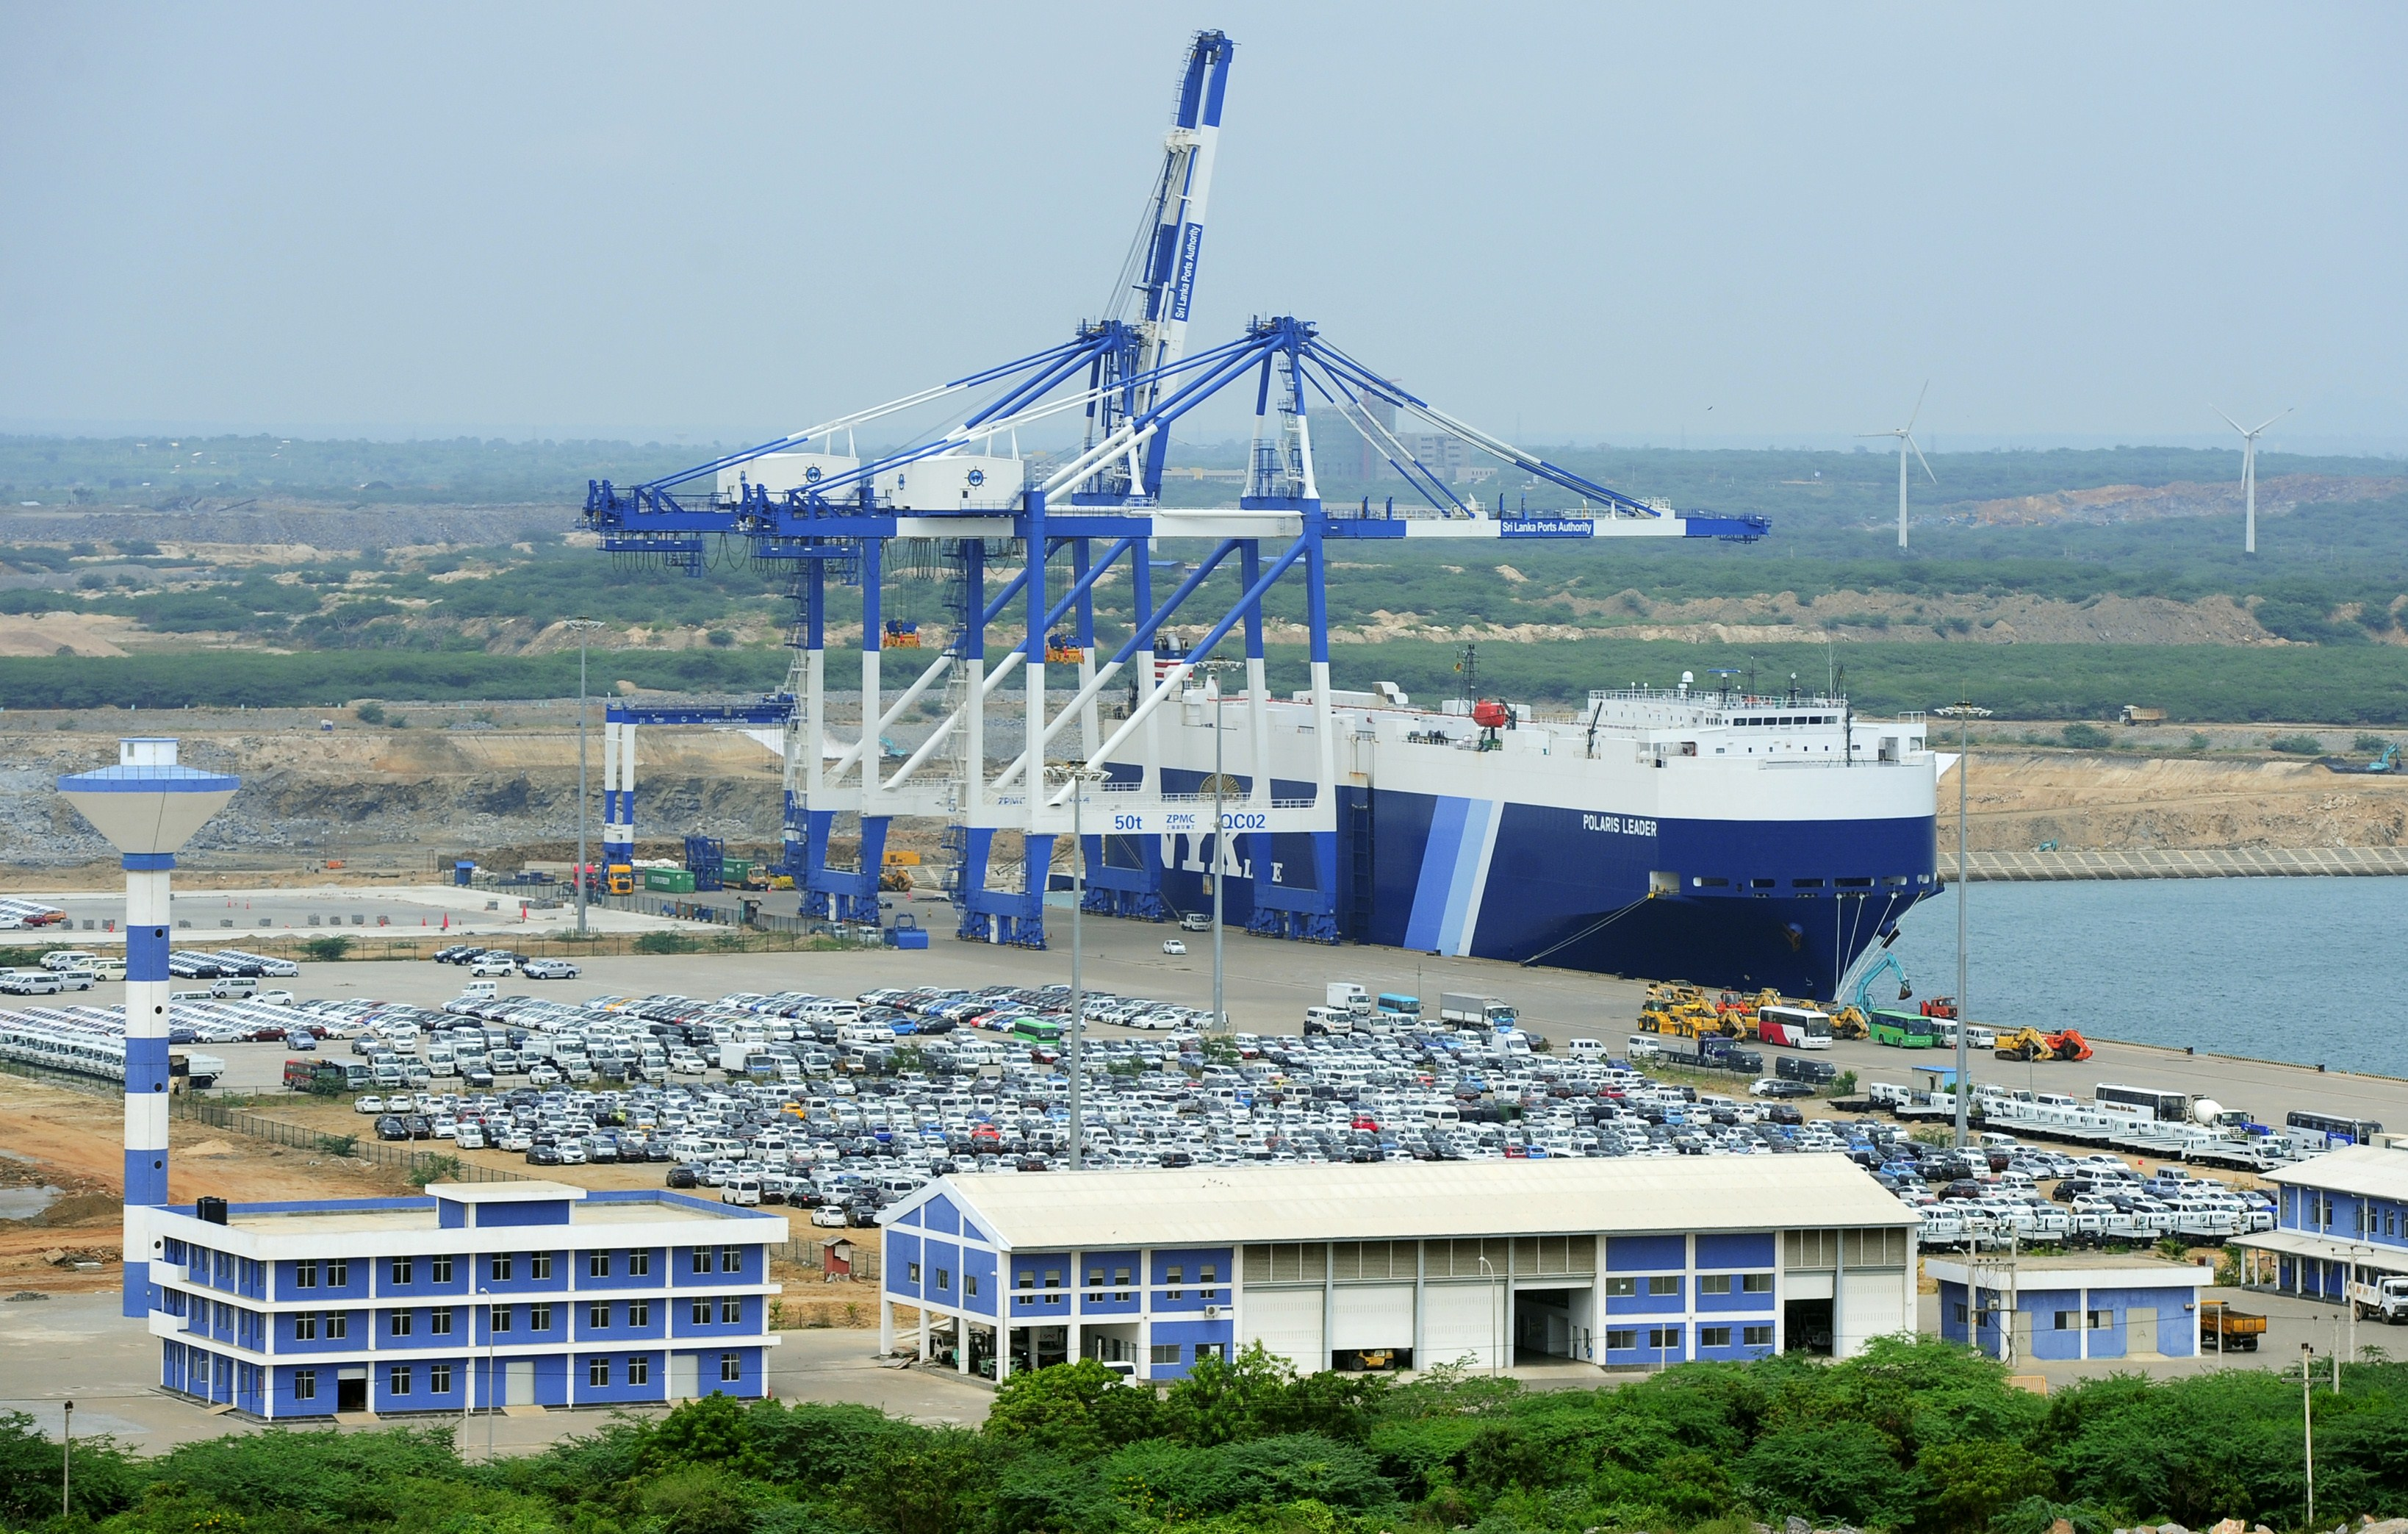 Sri Lanka cedes major port to China, fueling tensions